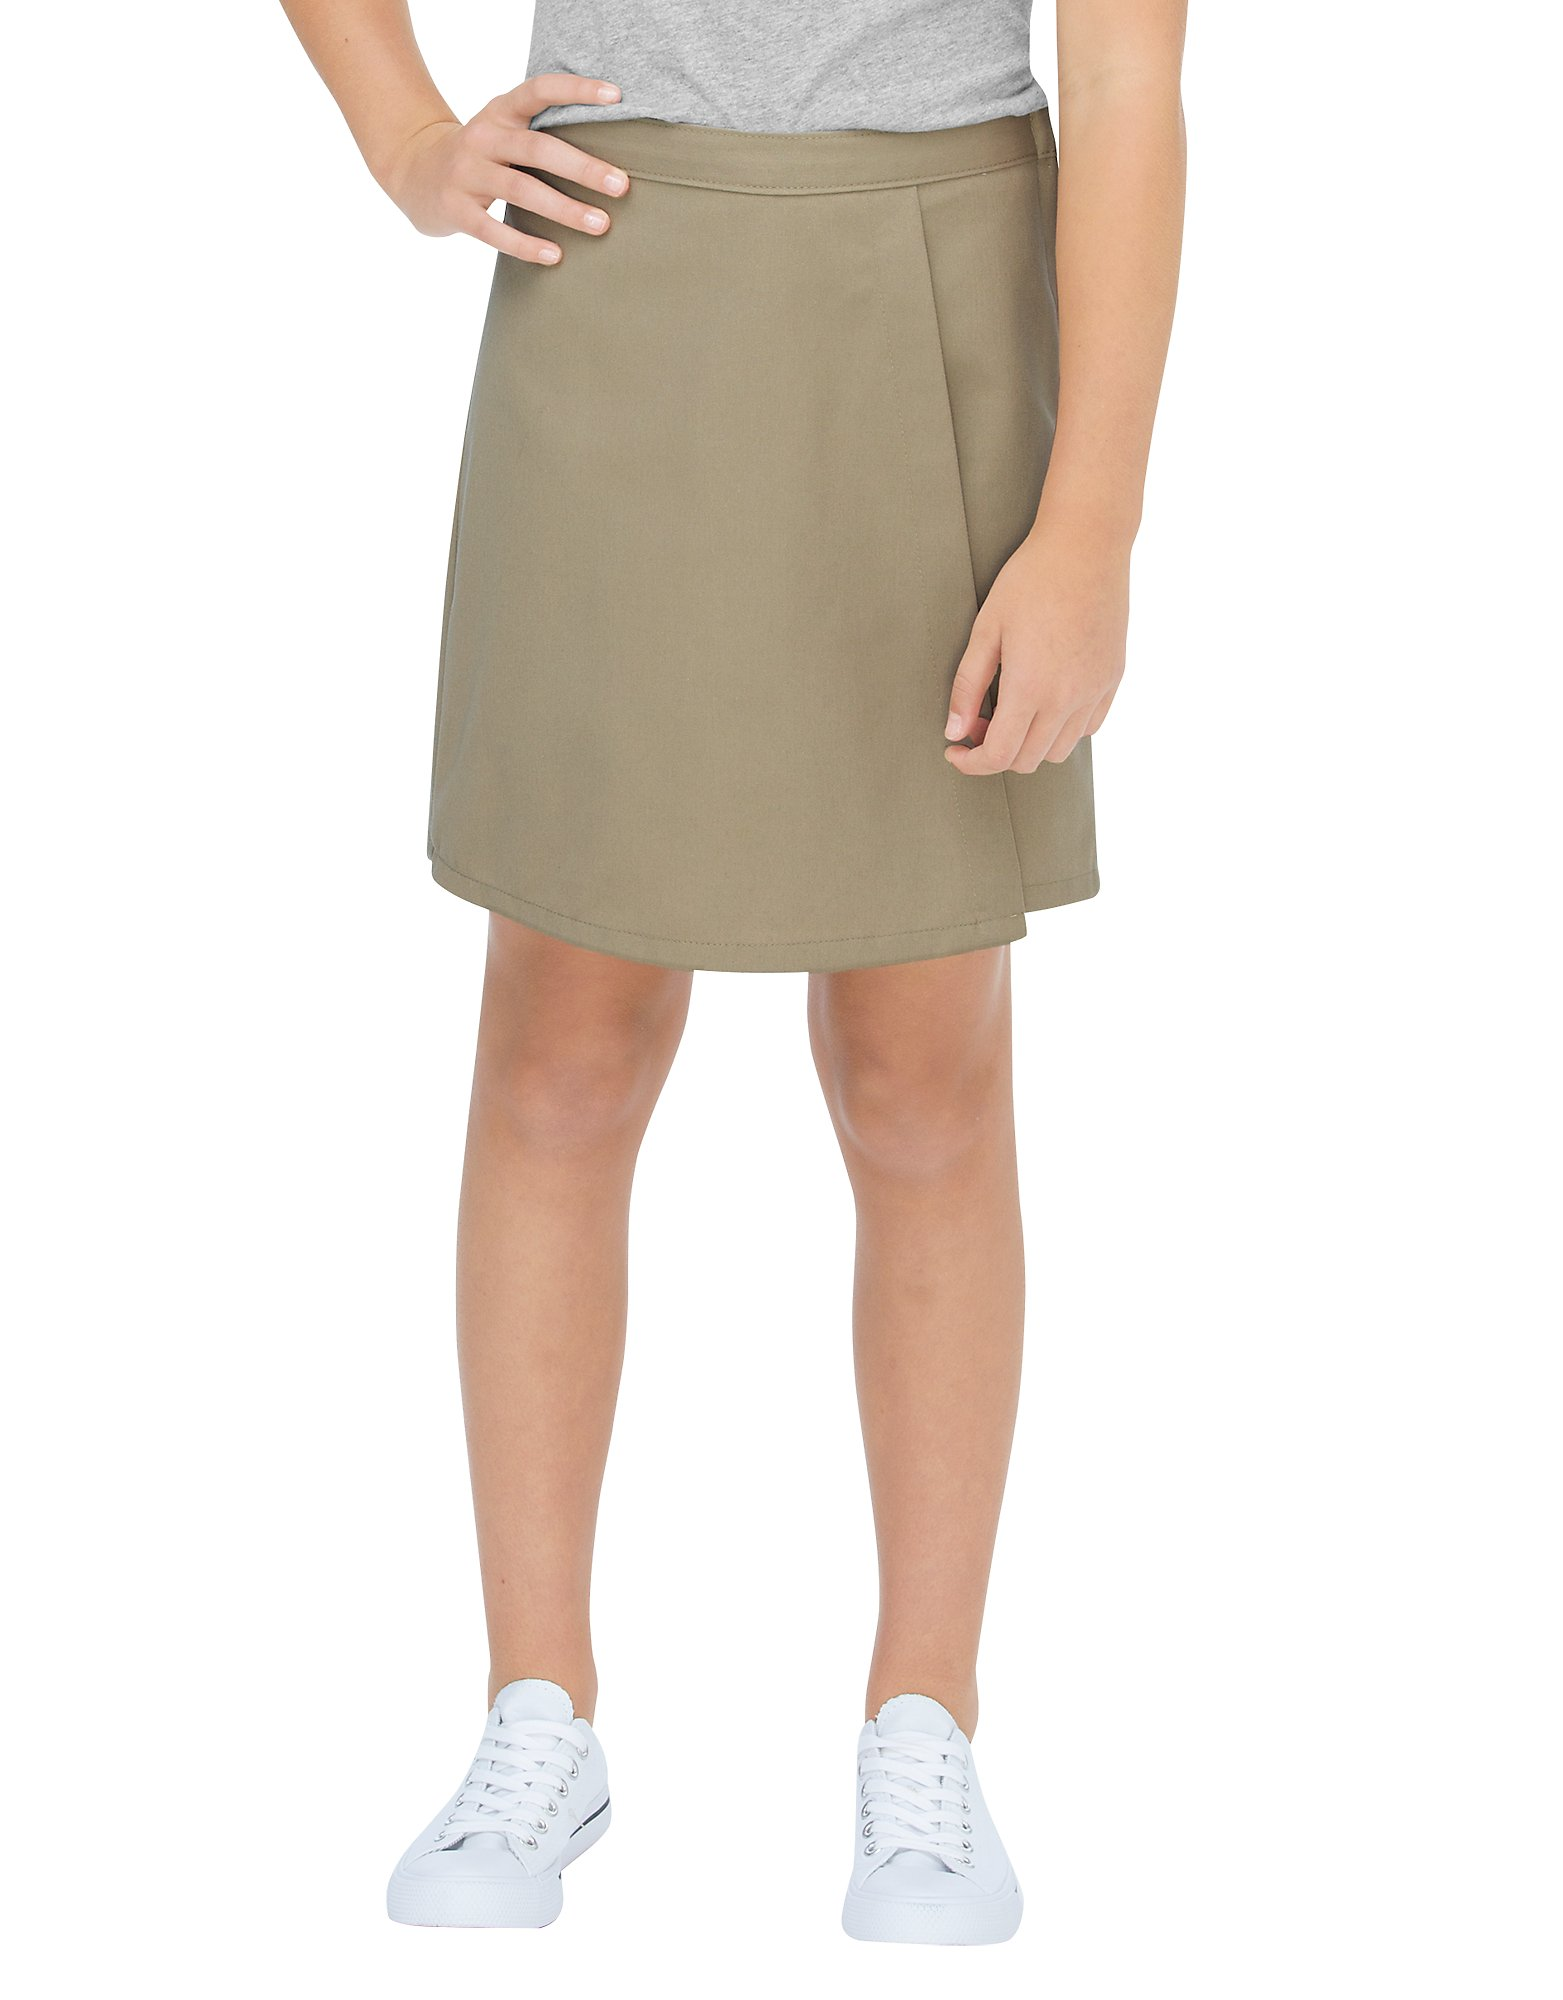 Girls' Faux Wrap Skort, 7-16 - Military Khaki (KH)